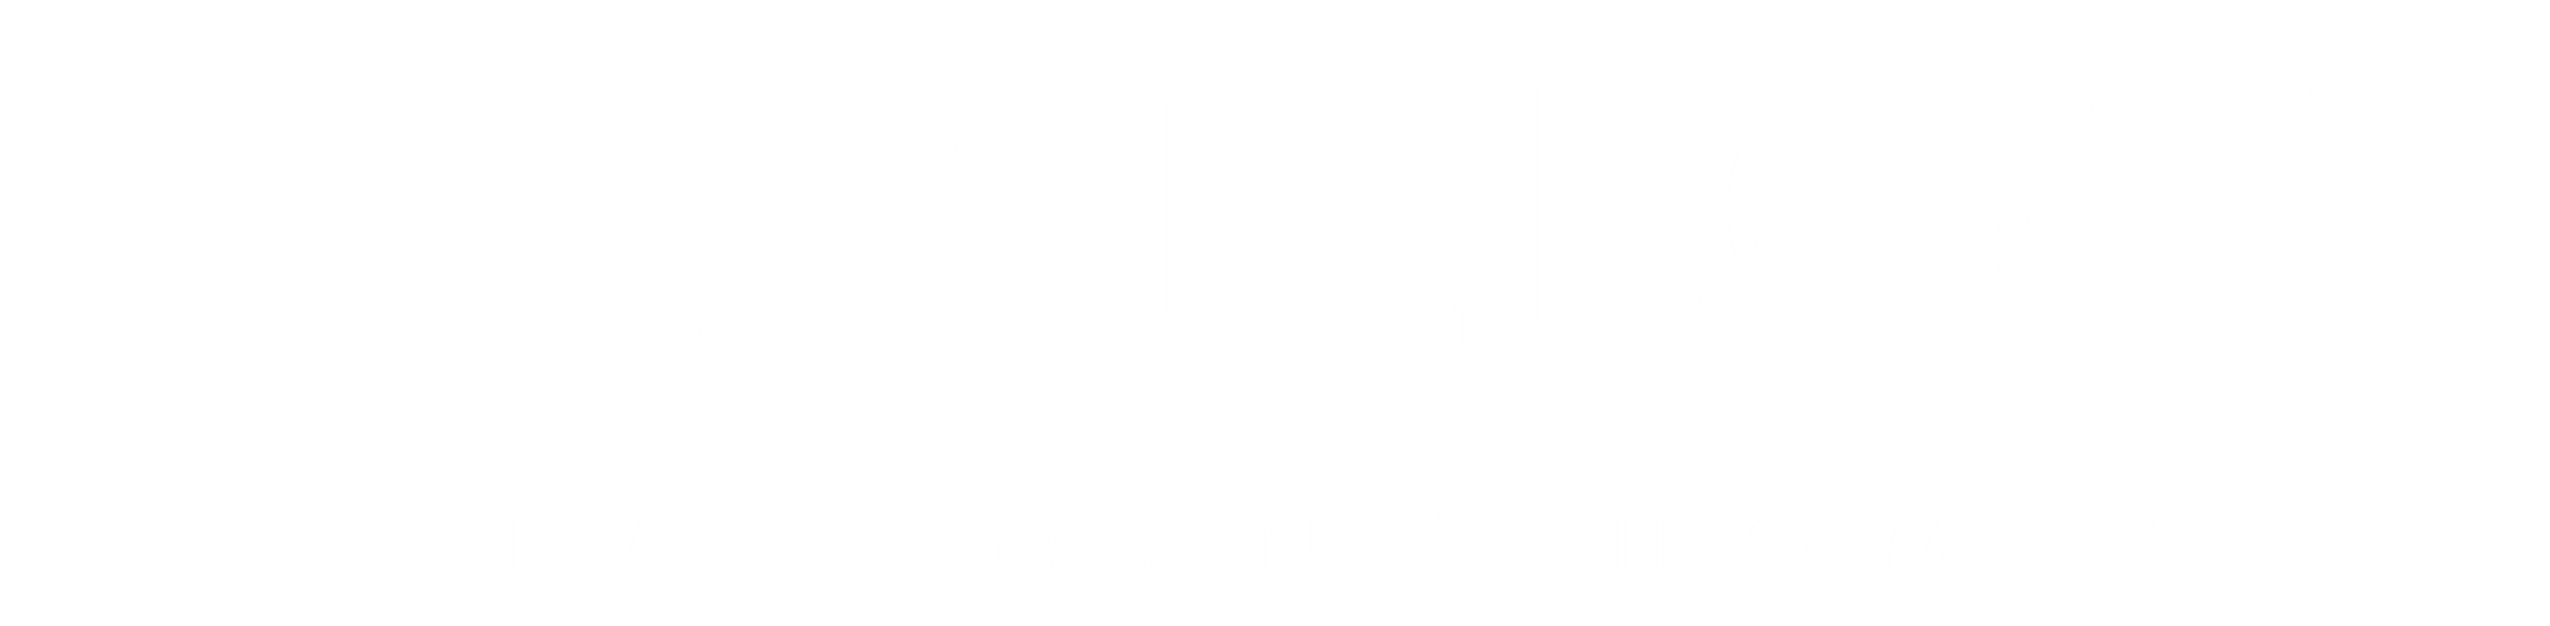 Logo for Carillon Apartments